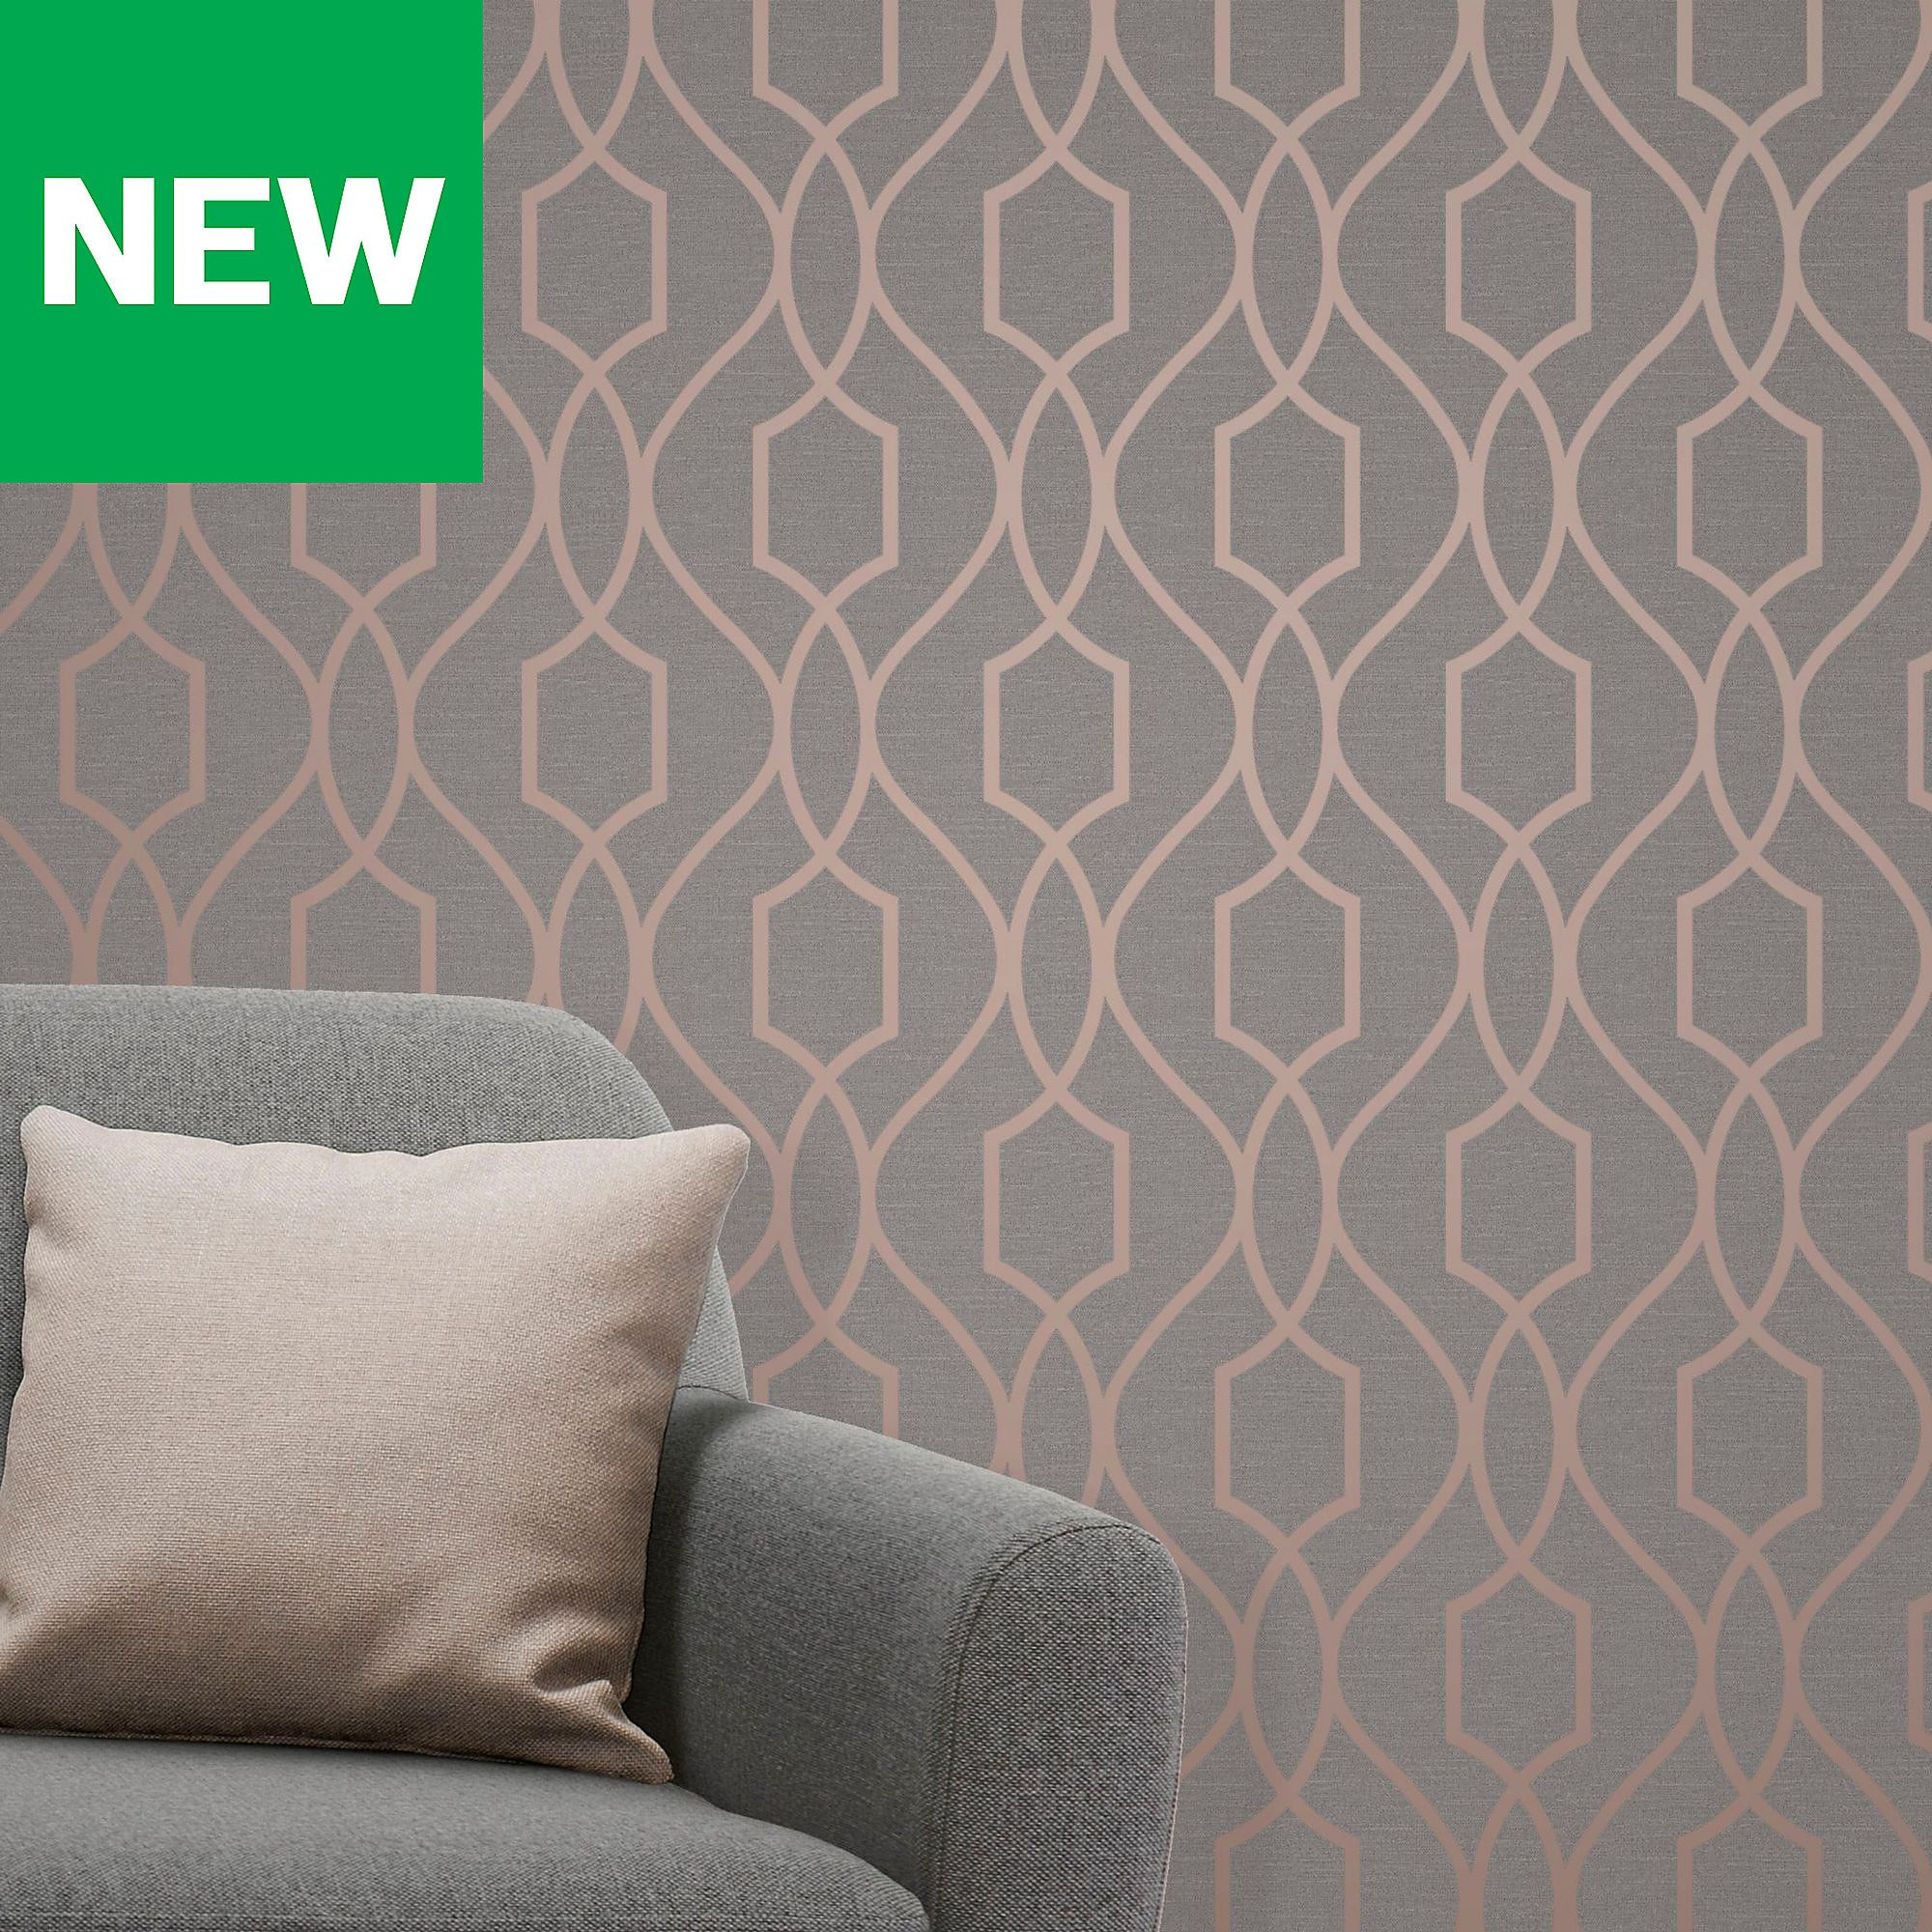 Fine Decor Grey Copper Effect Geometric Wallpaper Copper And Grey Living Room Wallpaper For Living Room 2019 Geometric Wallpaper